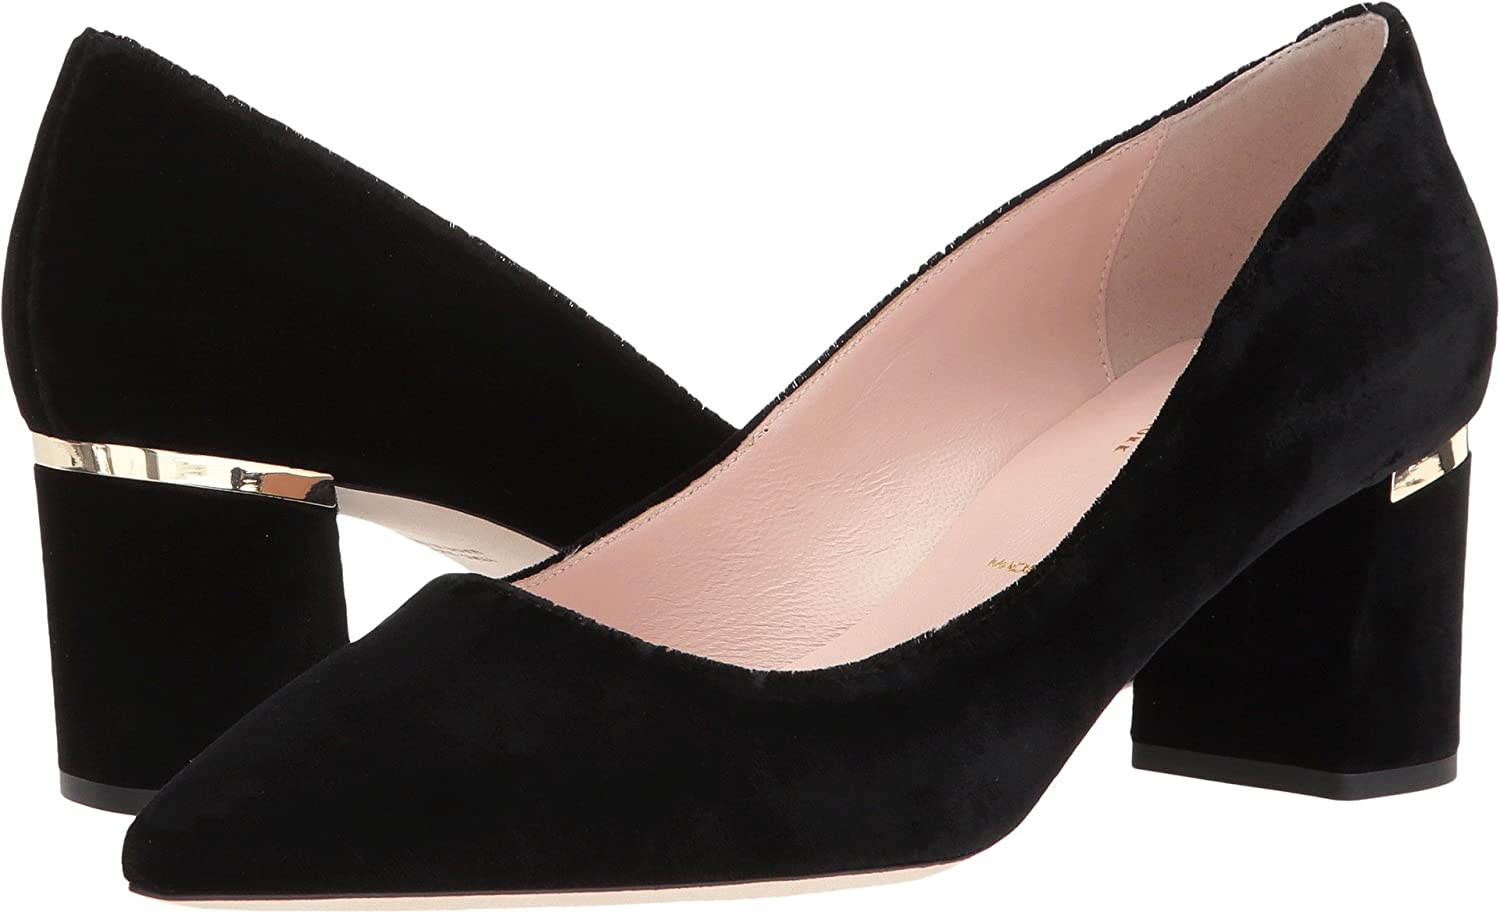 kate spade new york Women's Milan Too Dress Pump